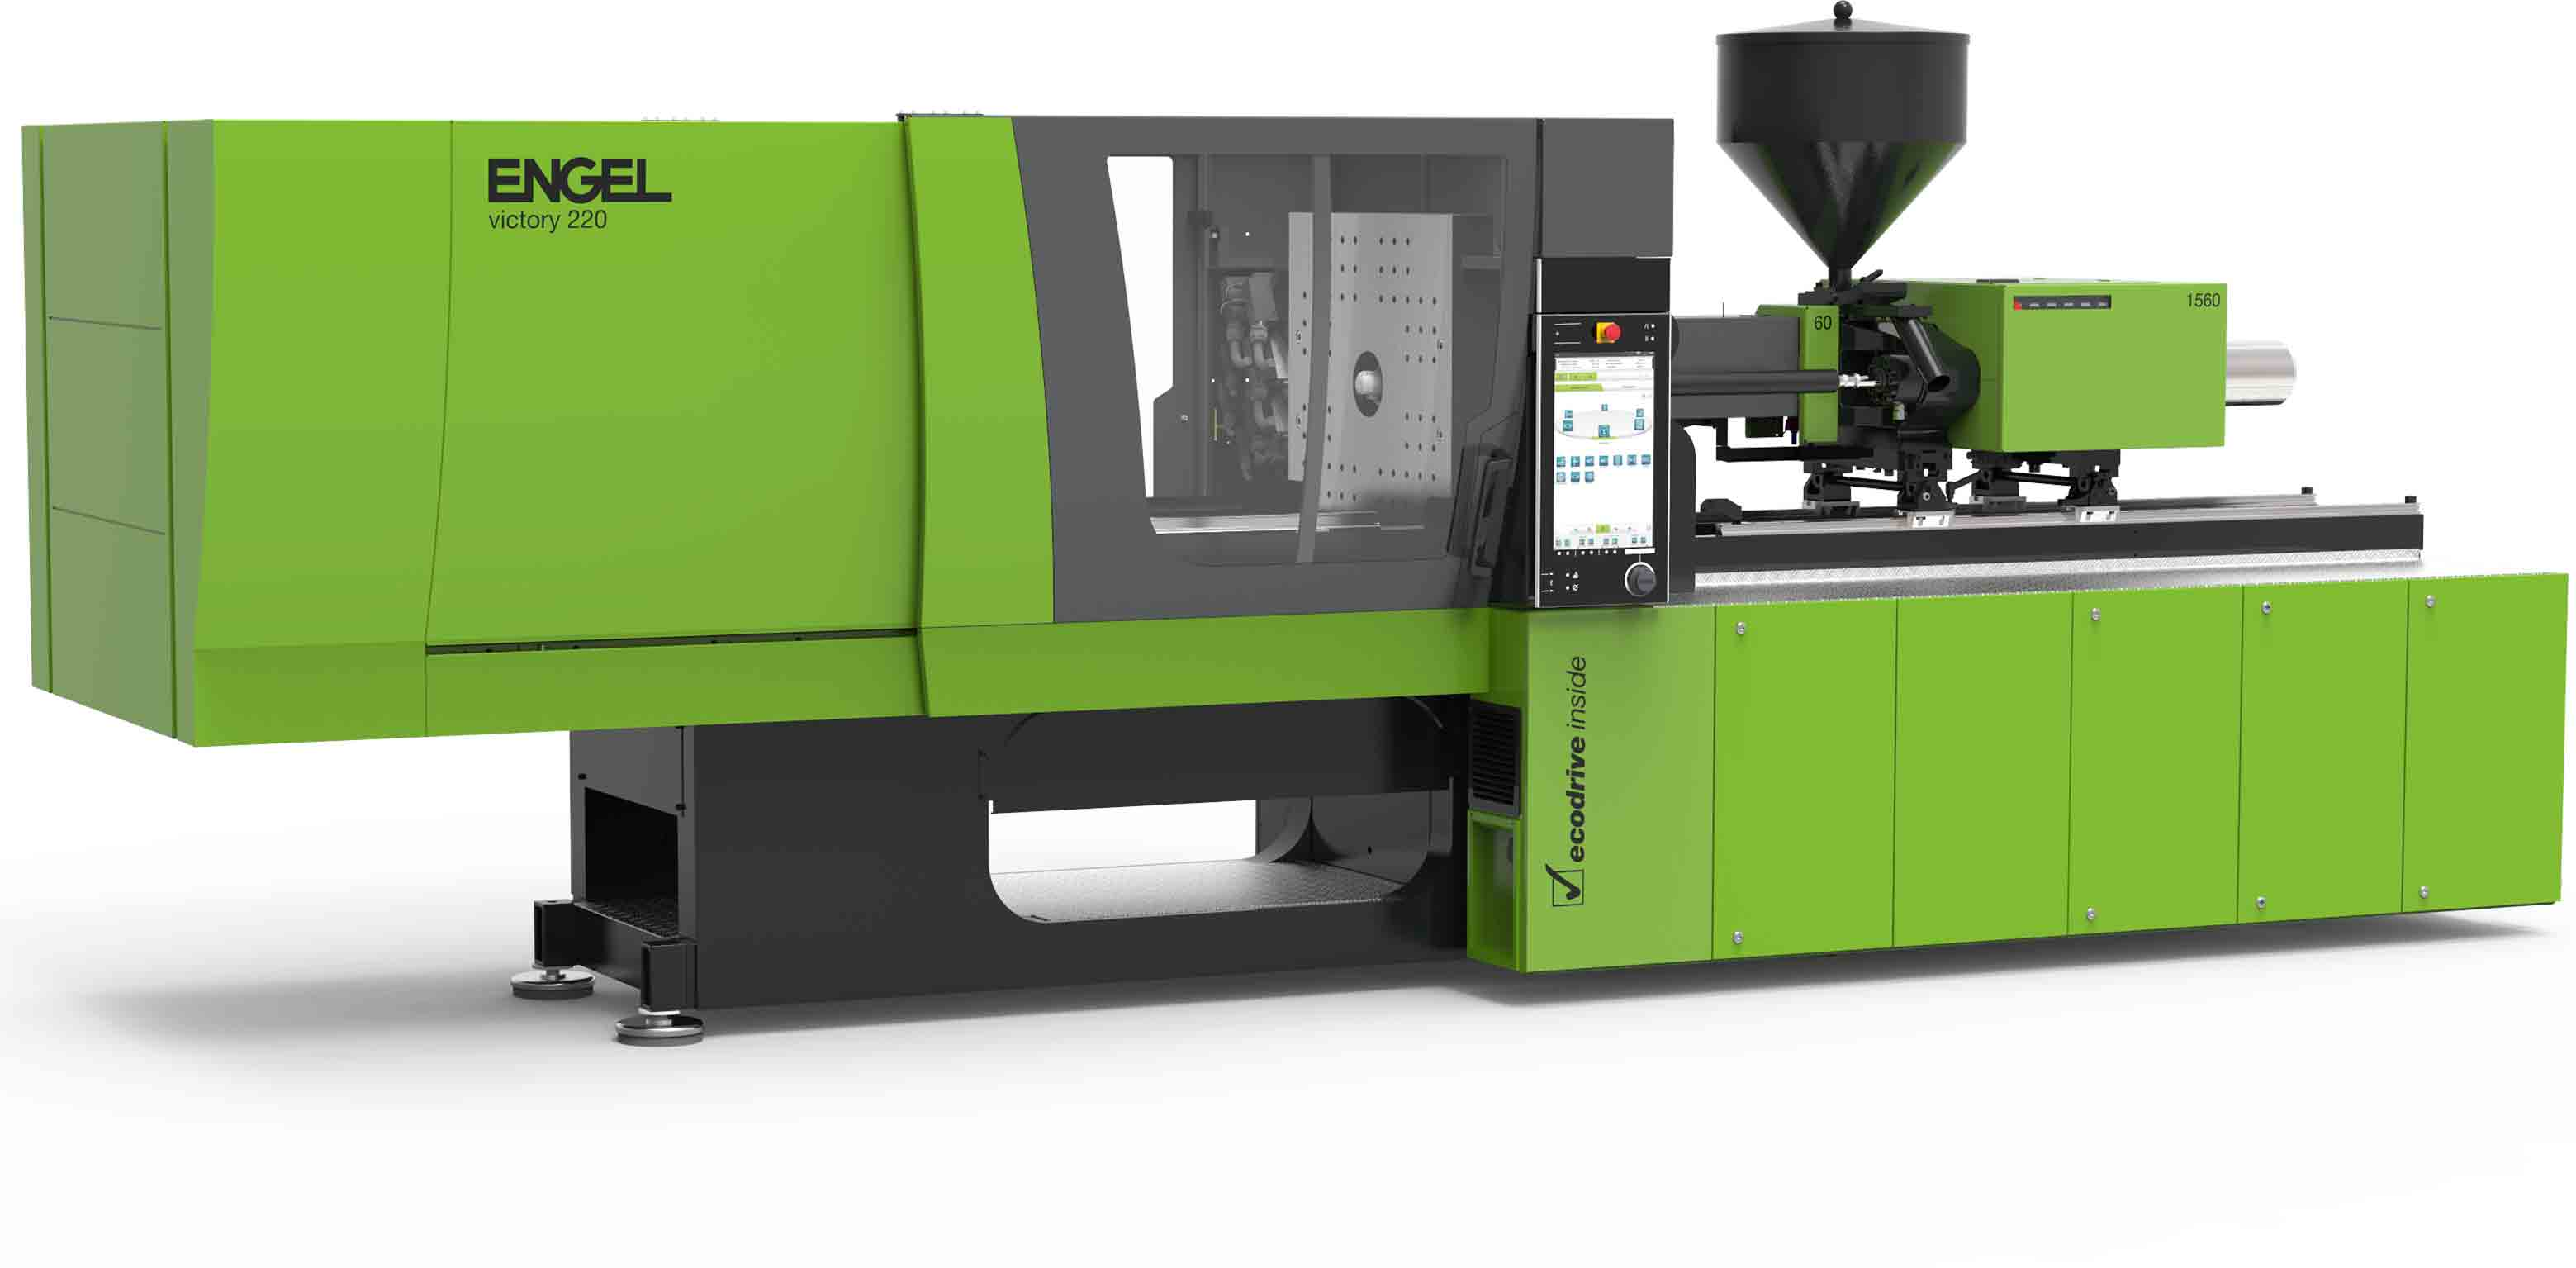 Fully Hydraulic Injection Molding Machine by ENGEL